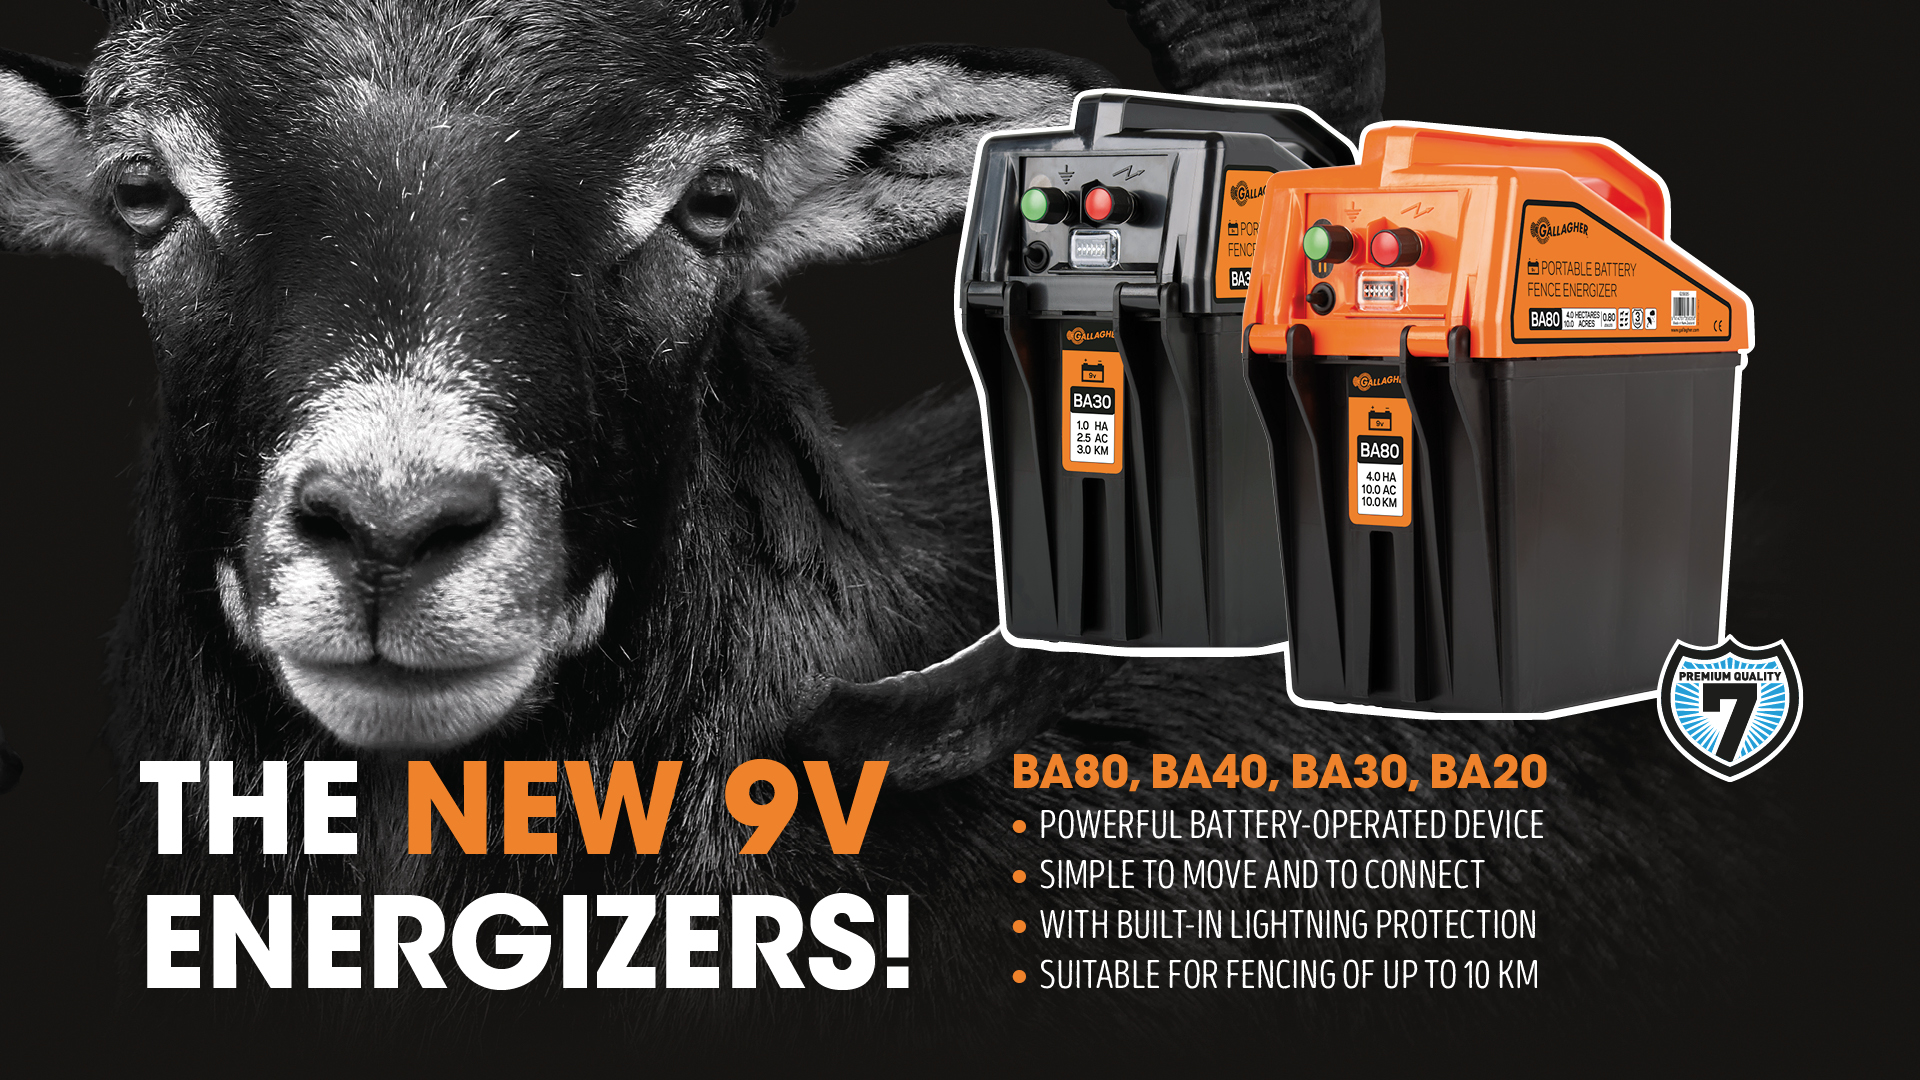 The new 9 v energizers